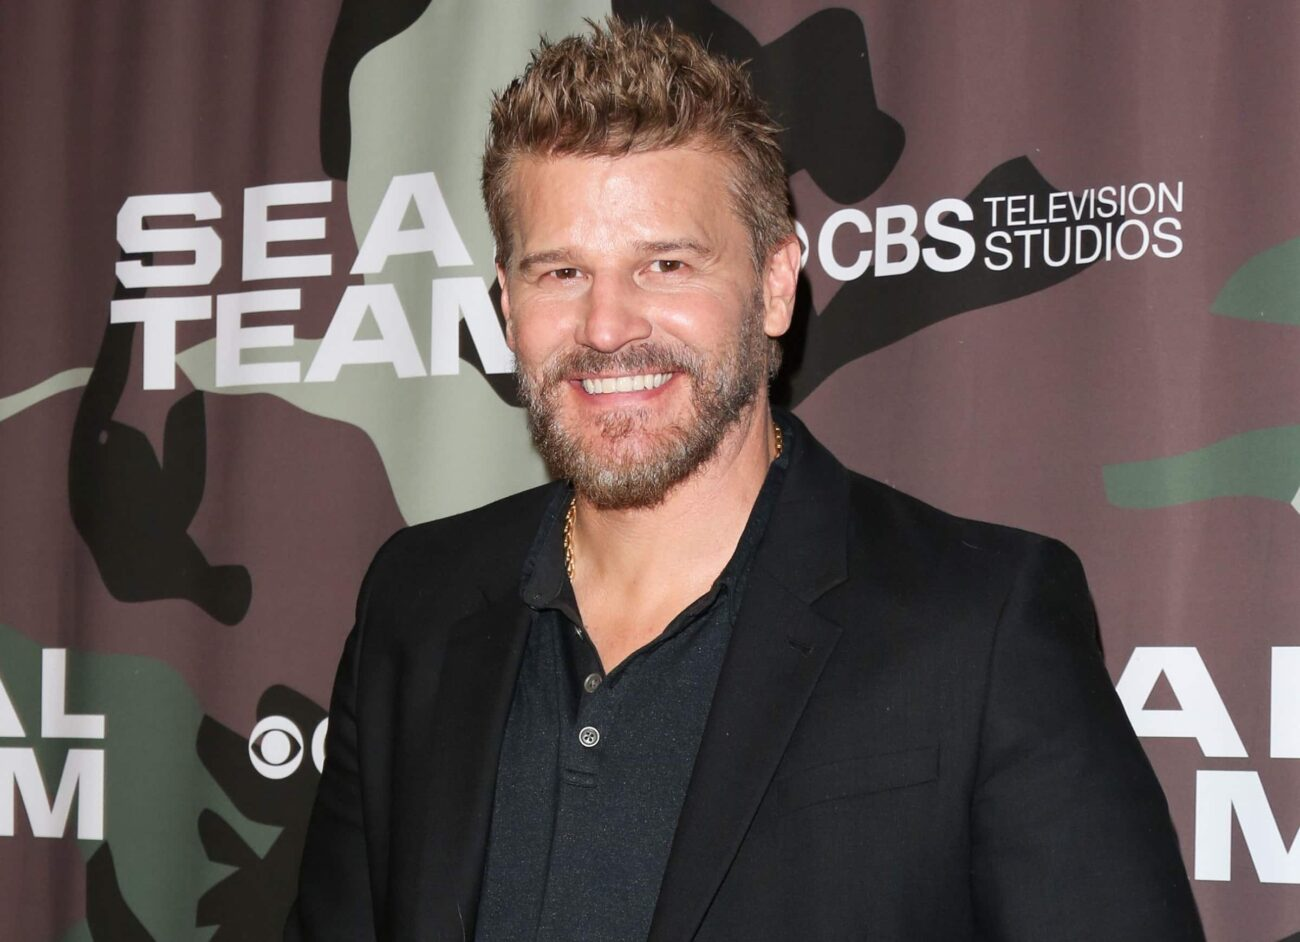 The star of 'Angel' has finally broken his silence regarding the allegations against Joss Whedon. Learn what David Boreanaz told Charisma Carpenter!